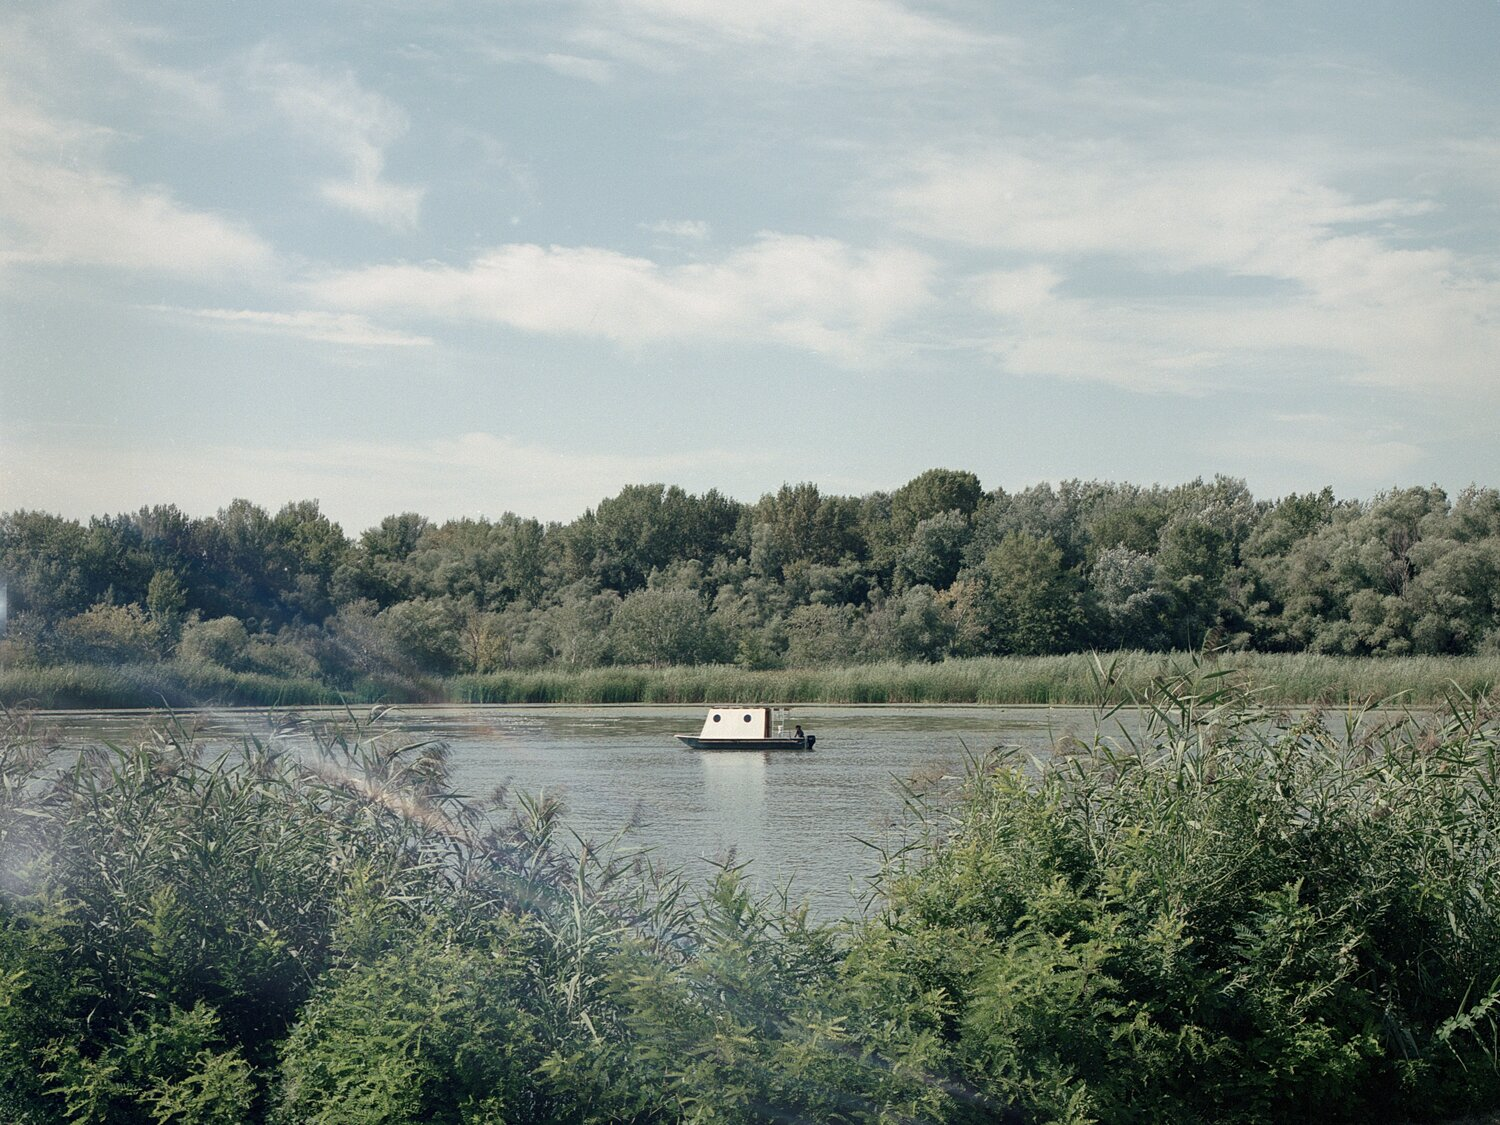 Exterior of Sneci Houseboat on Lake Tisza